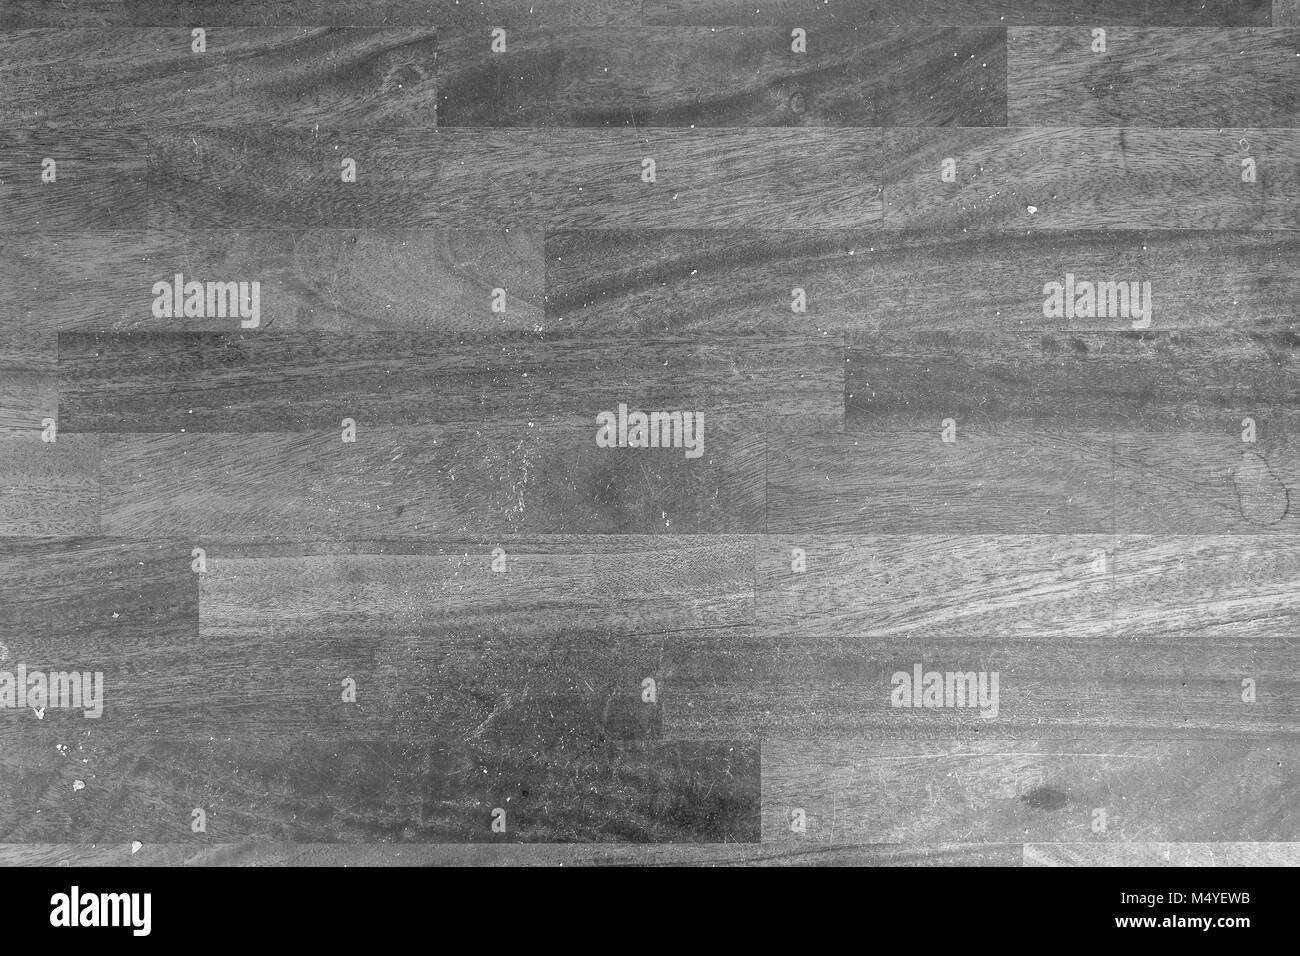 Dirty Wooden Kitchen Counter With Stains And Bread Crumps Viewed From Above  In Black And White.